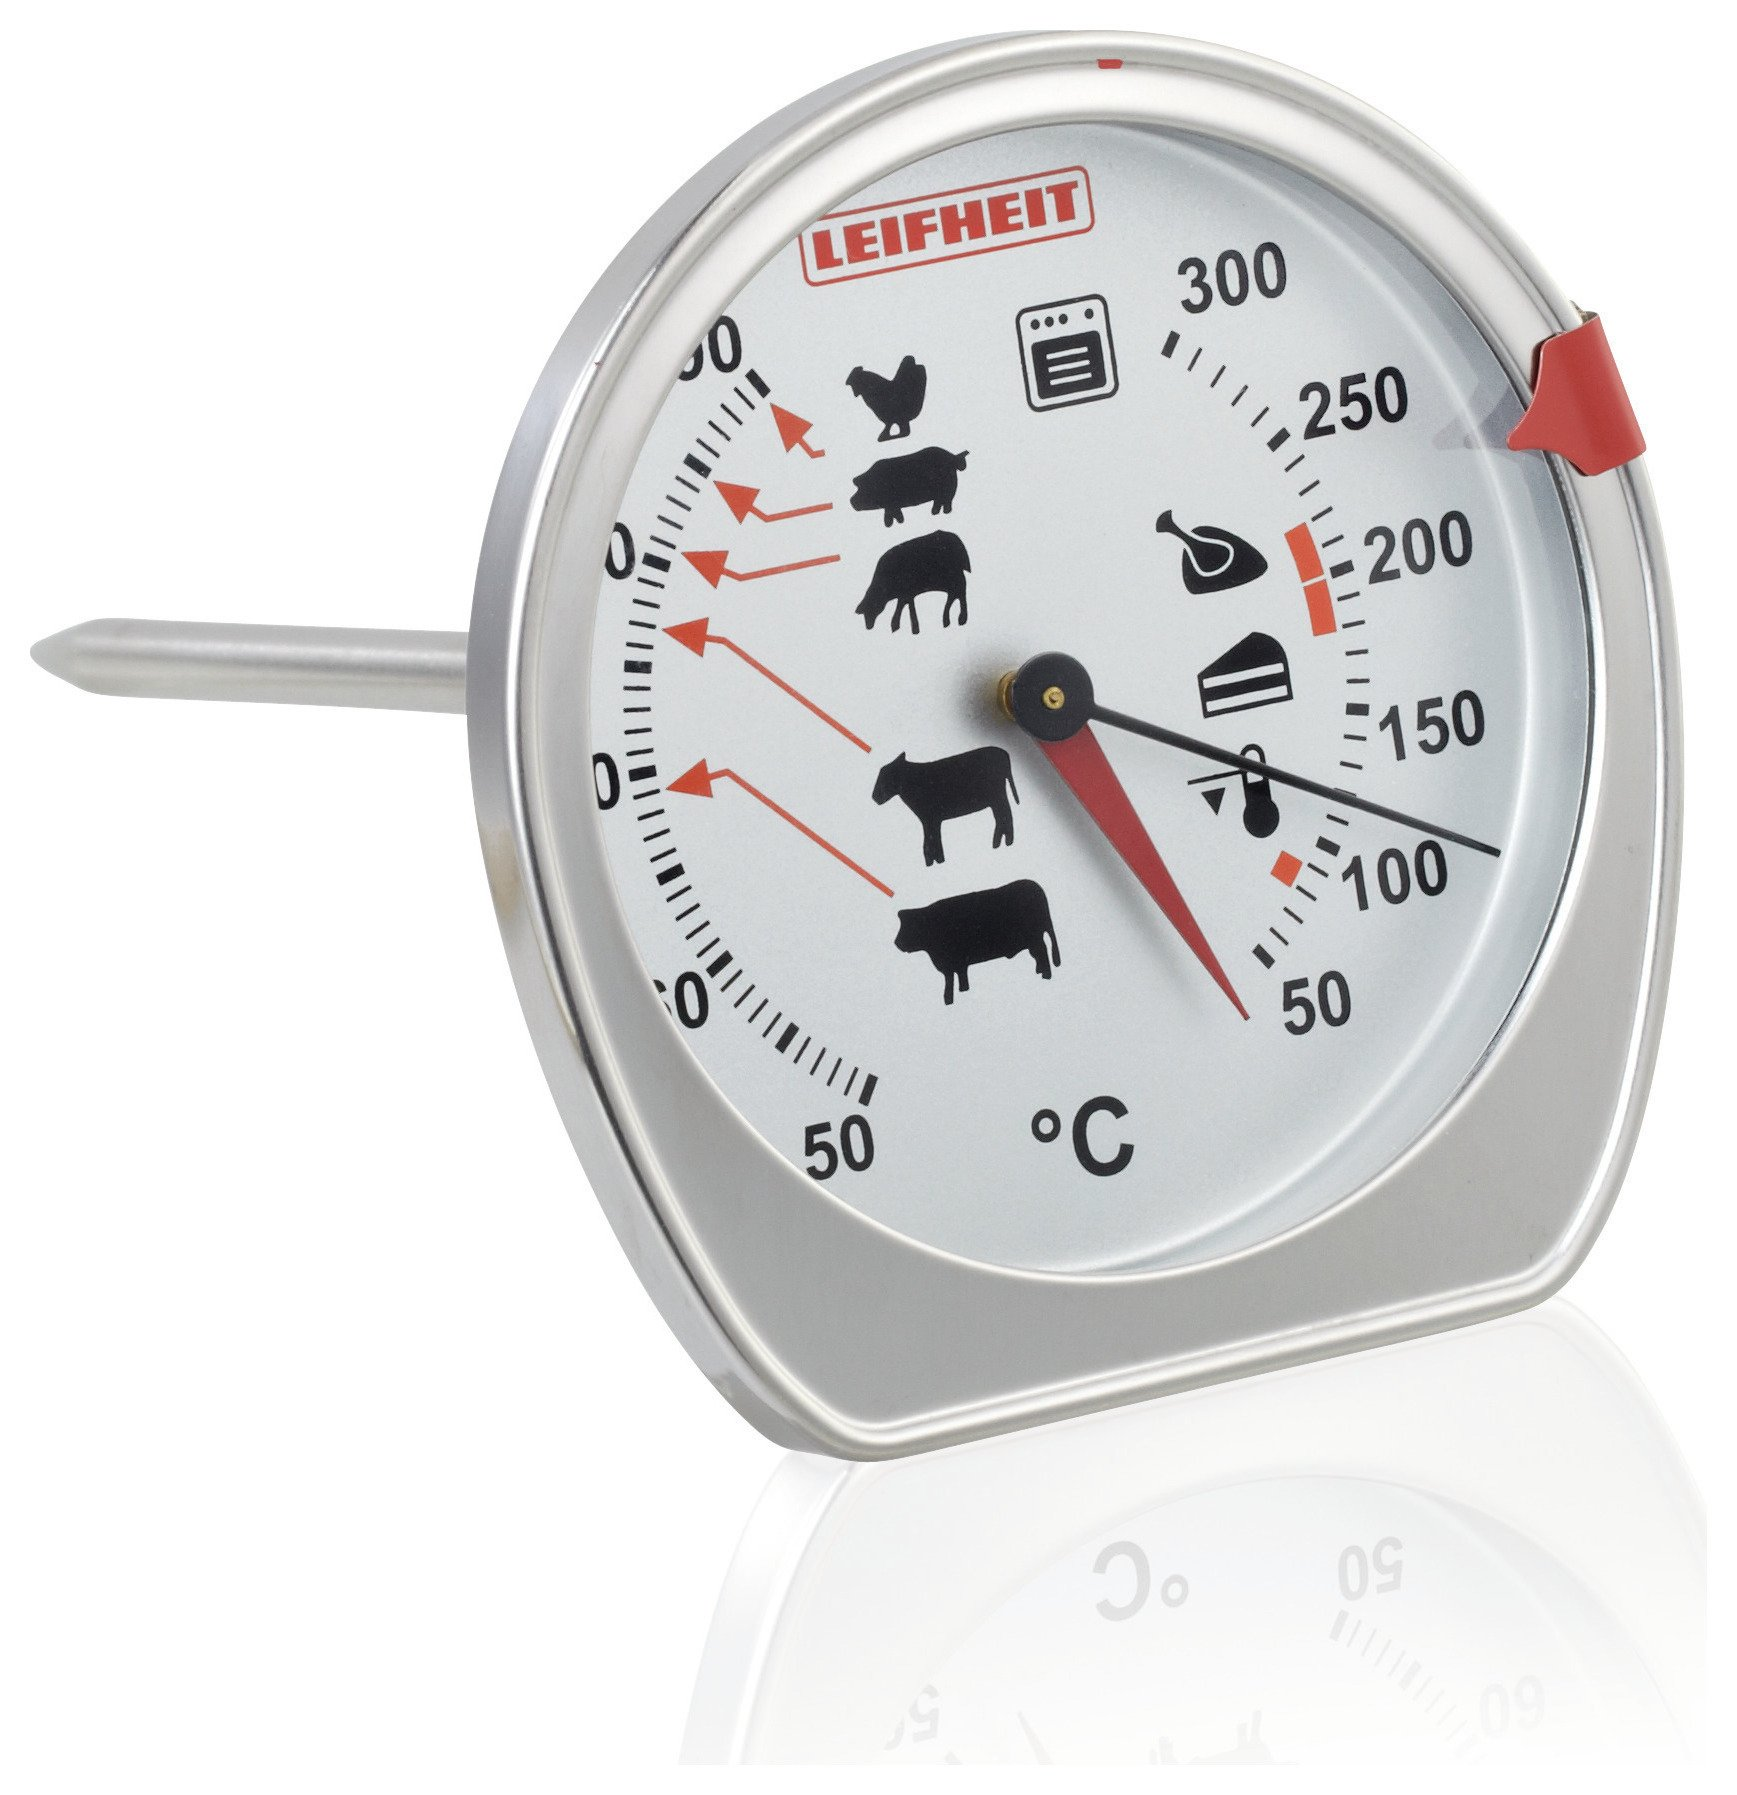 Image of Leifheit Meat Oven Thermometer.